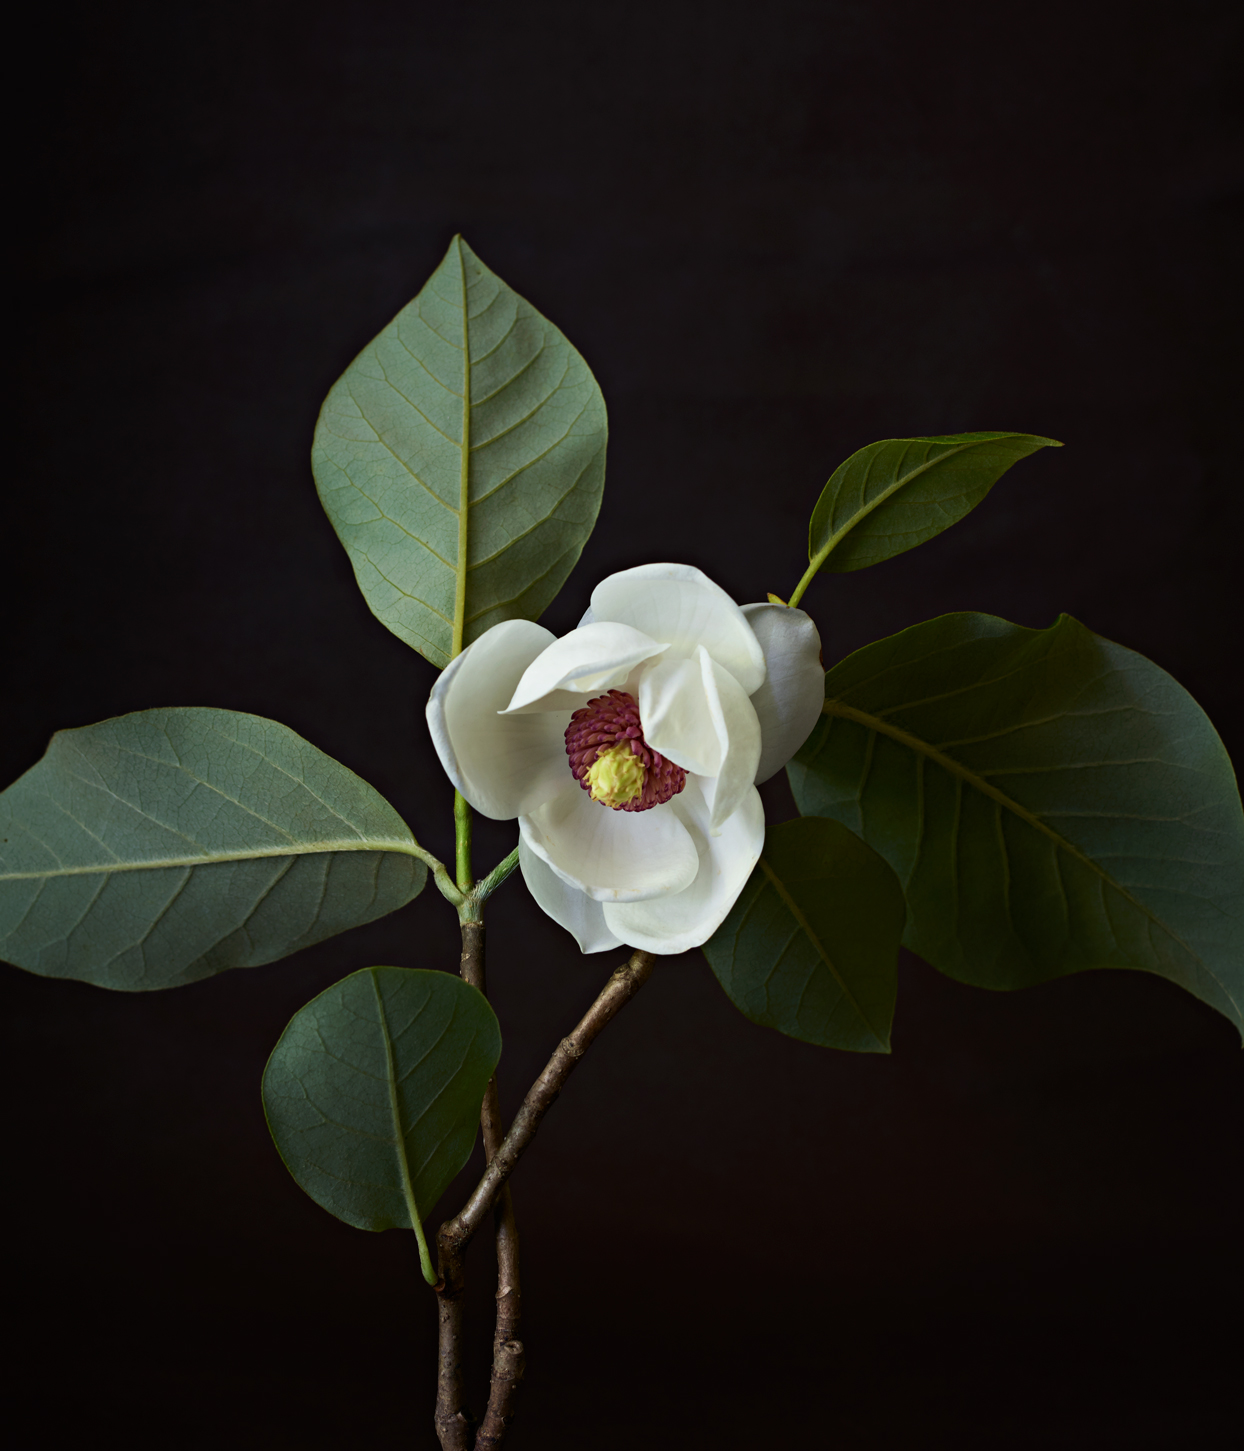 Everything You Need to Know About Magnolia Trees—from Their Prehistoric Origins to Identifying and Growing Them